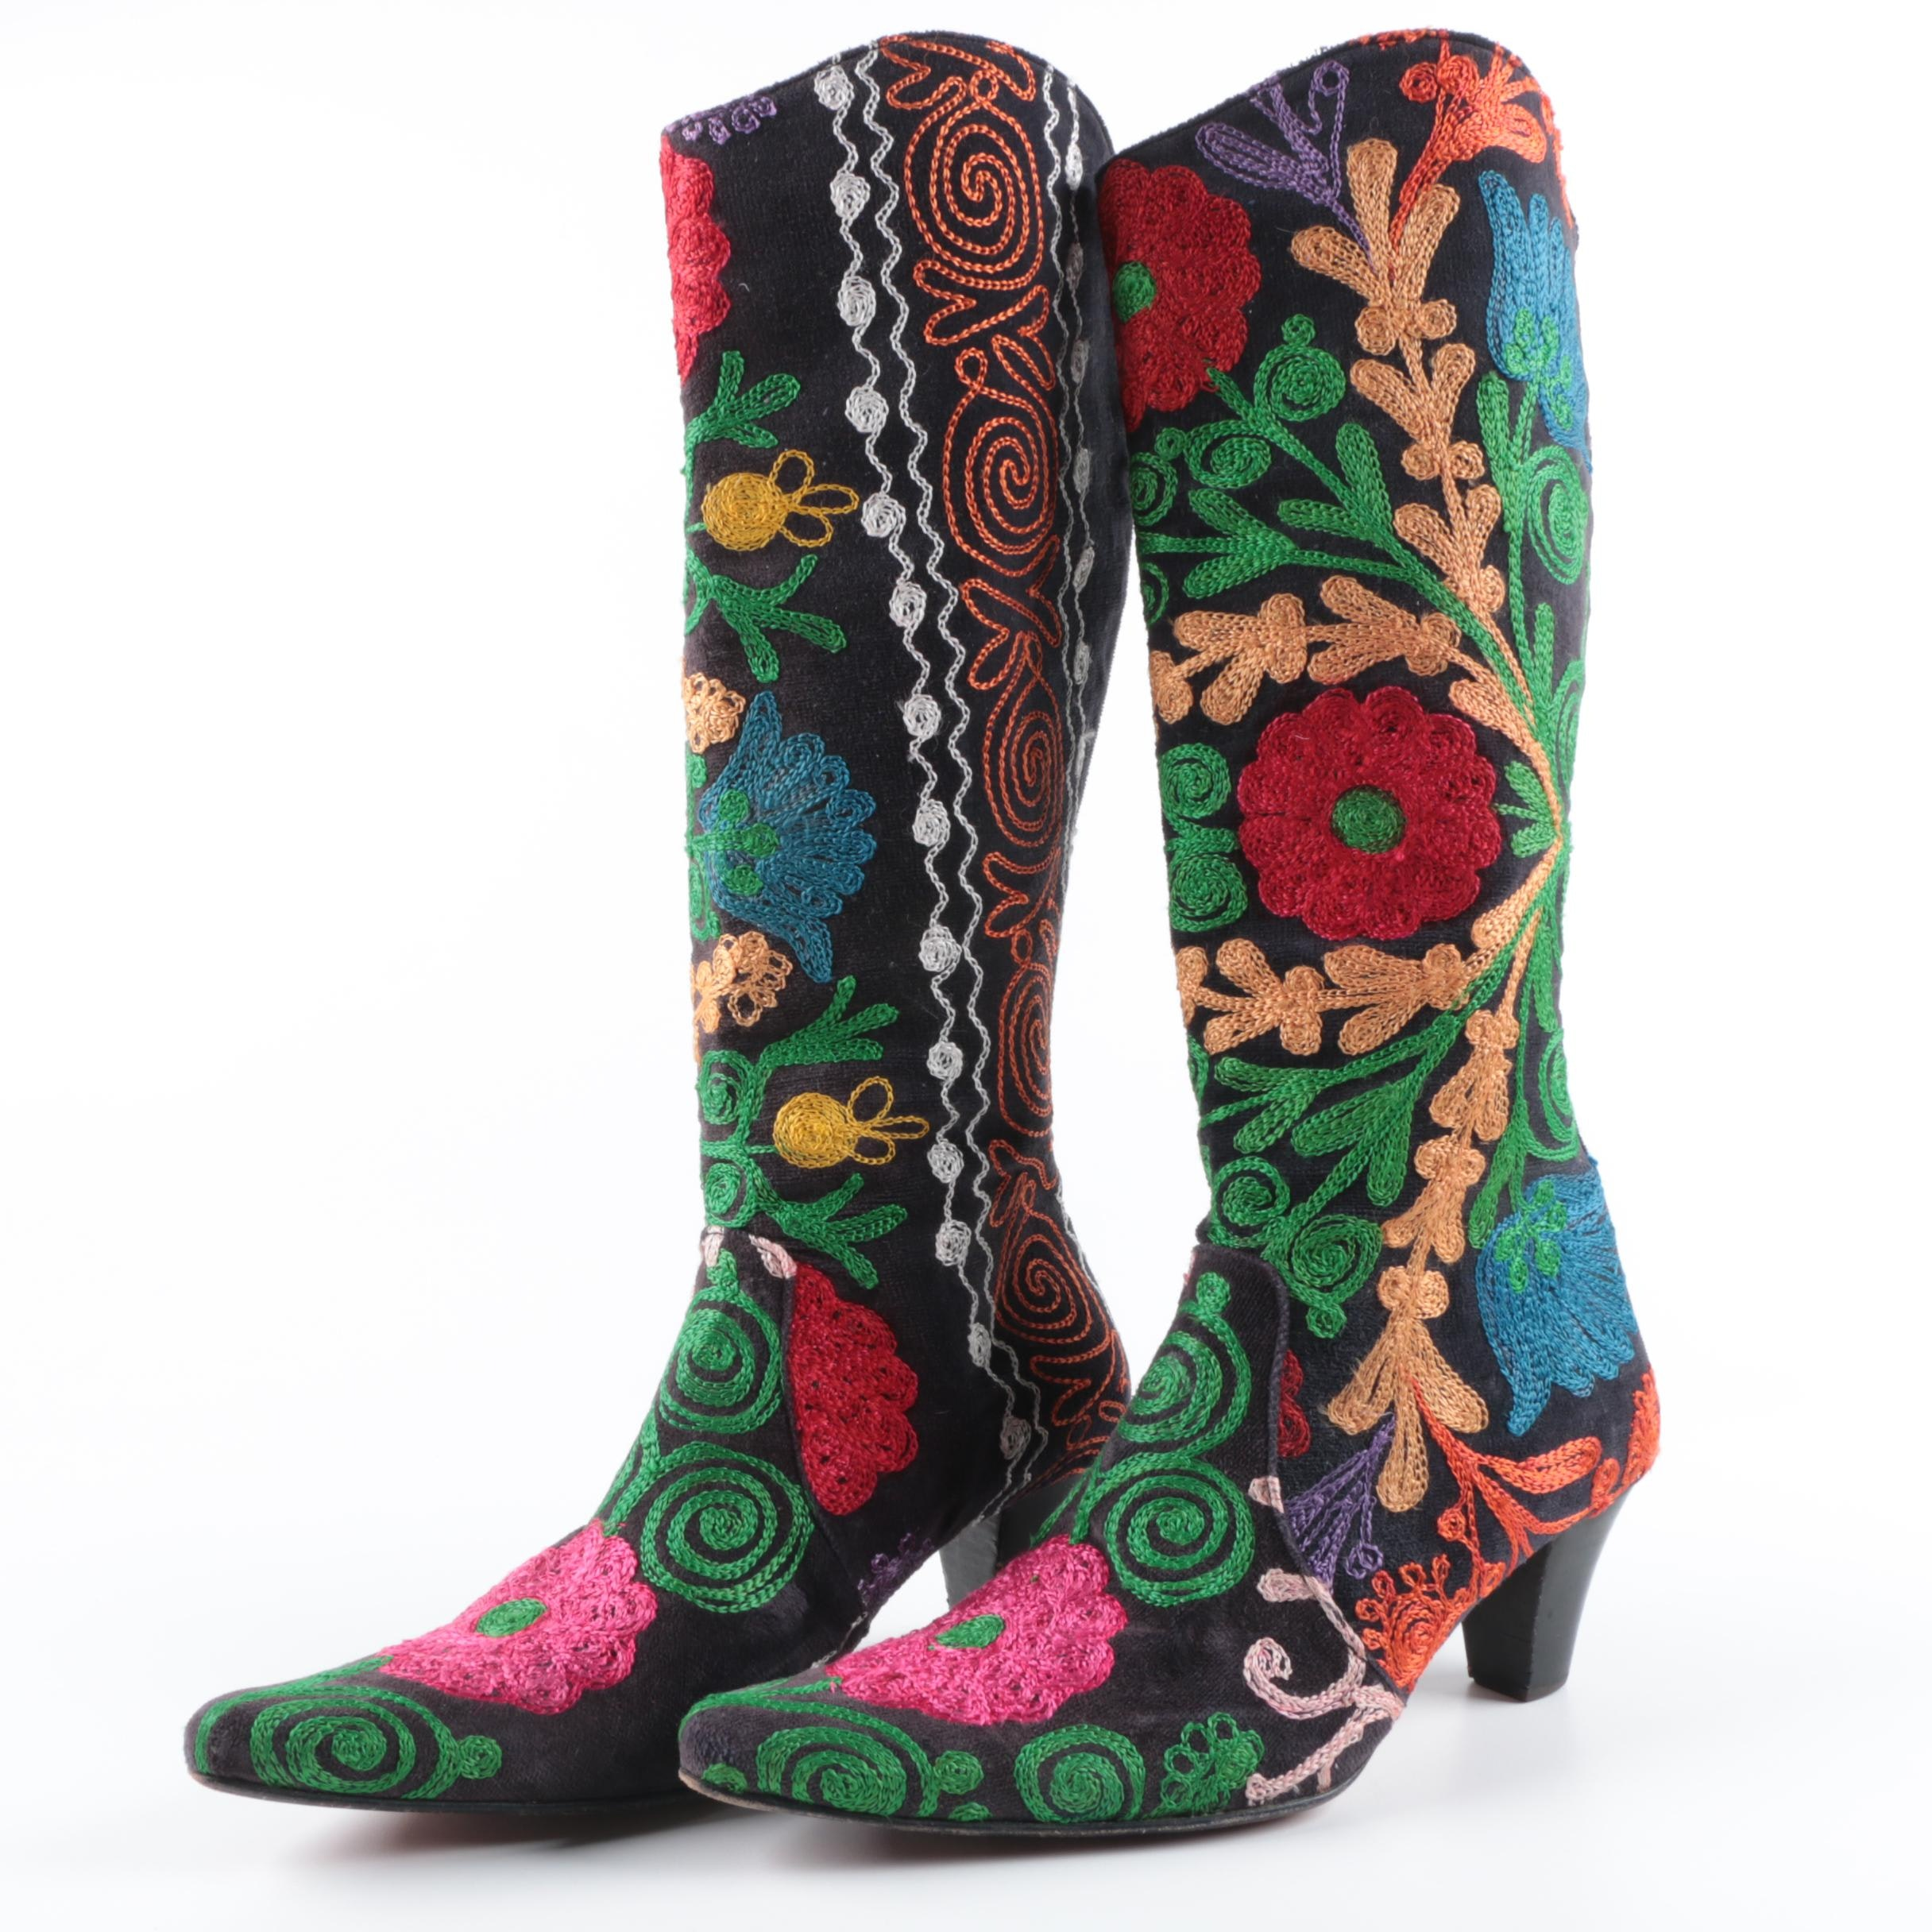 Erkan Demir for Artemis Embroidered Velvet Boots